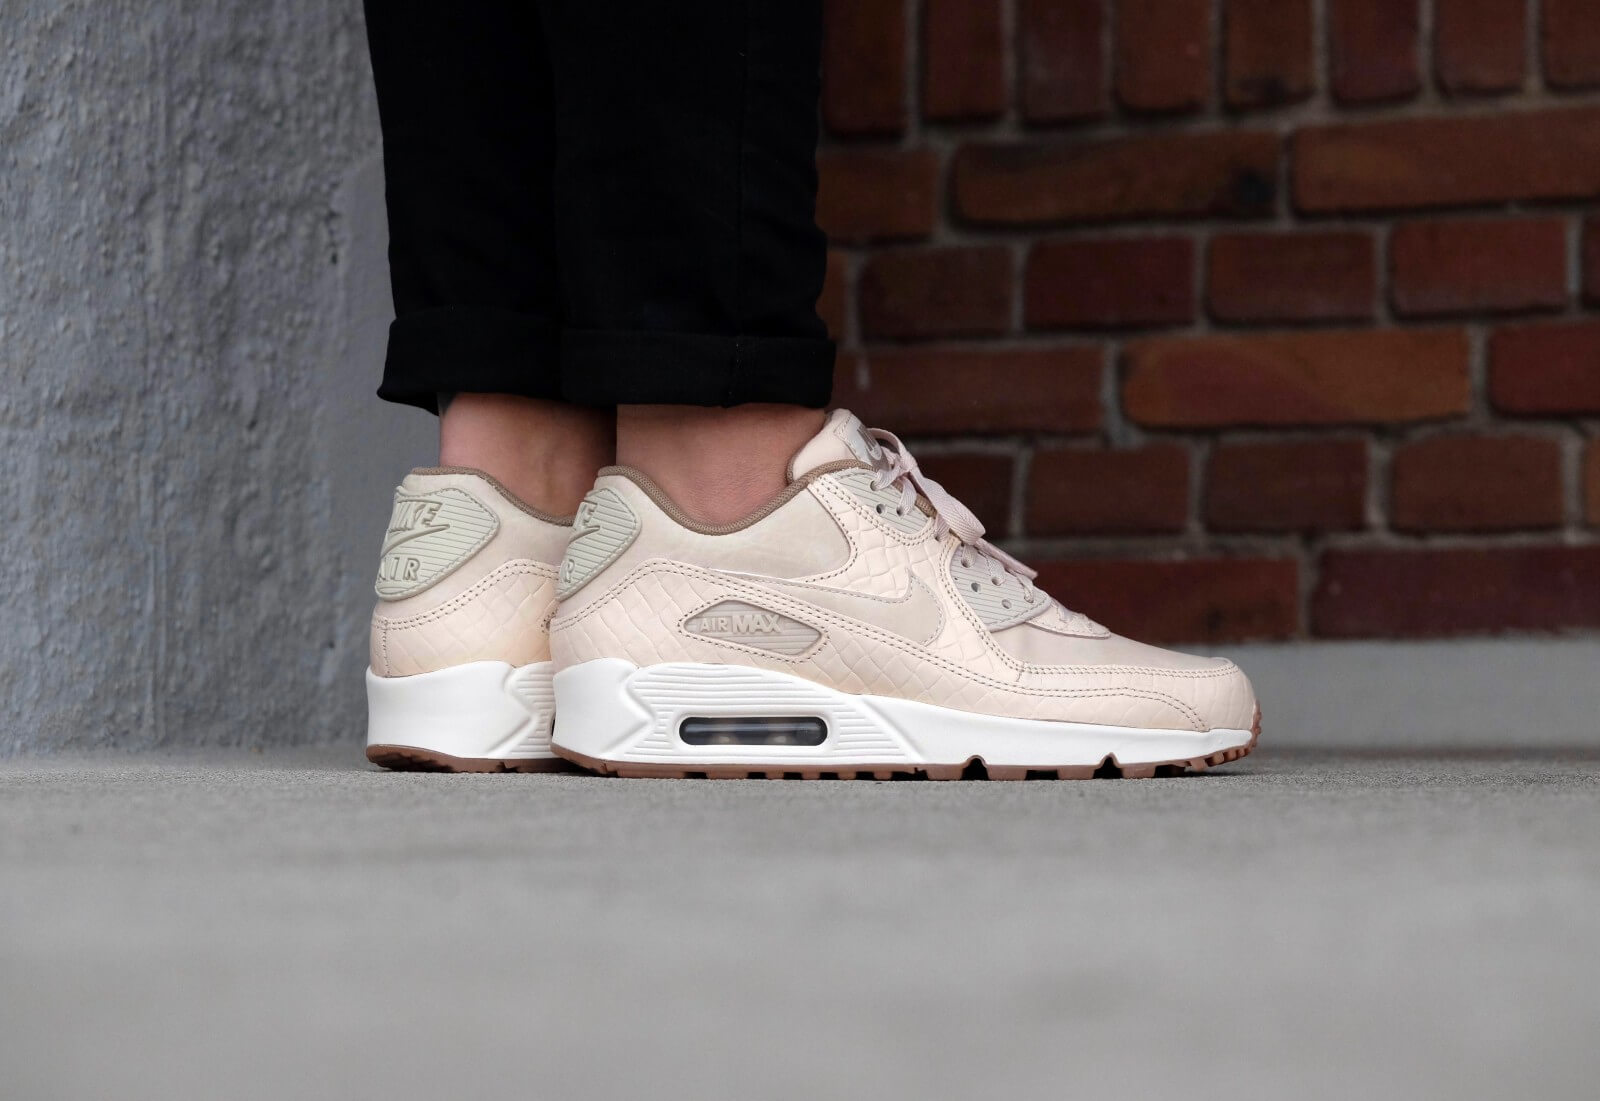 Nike Wmns Air Max 90 PRM Oatmealoatmeal sail khaki 443817 105